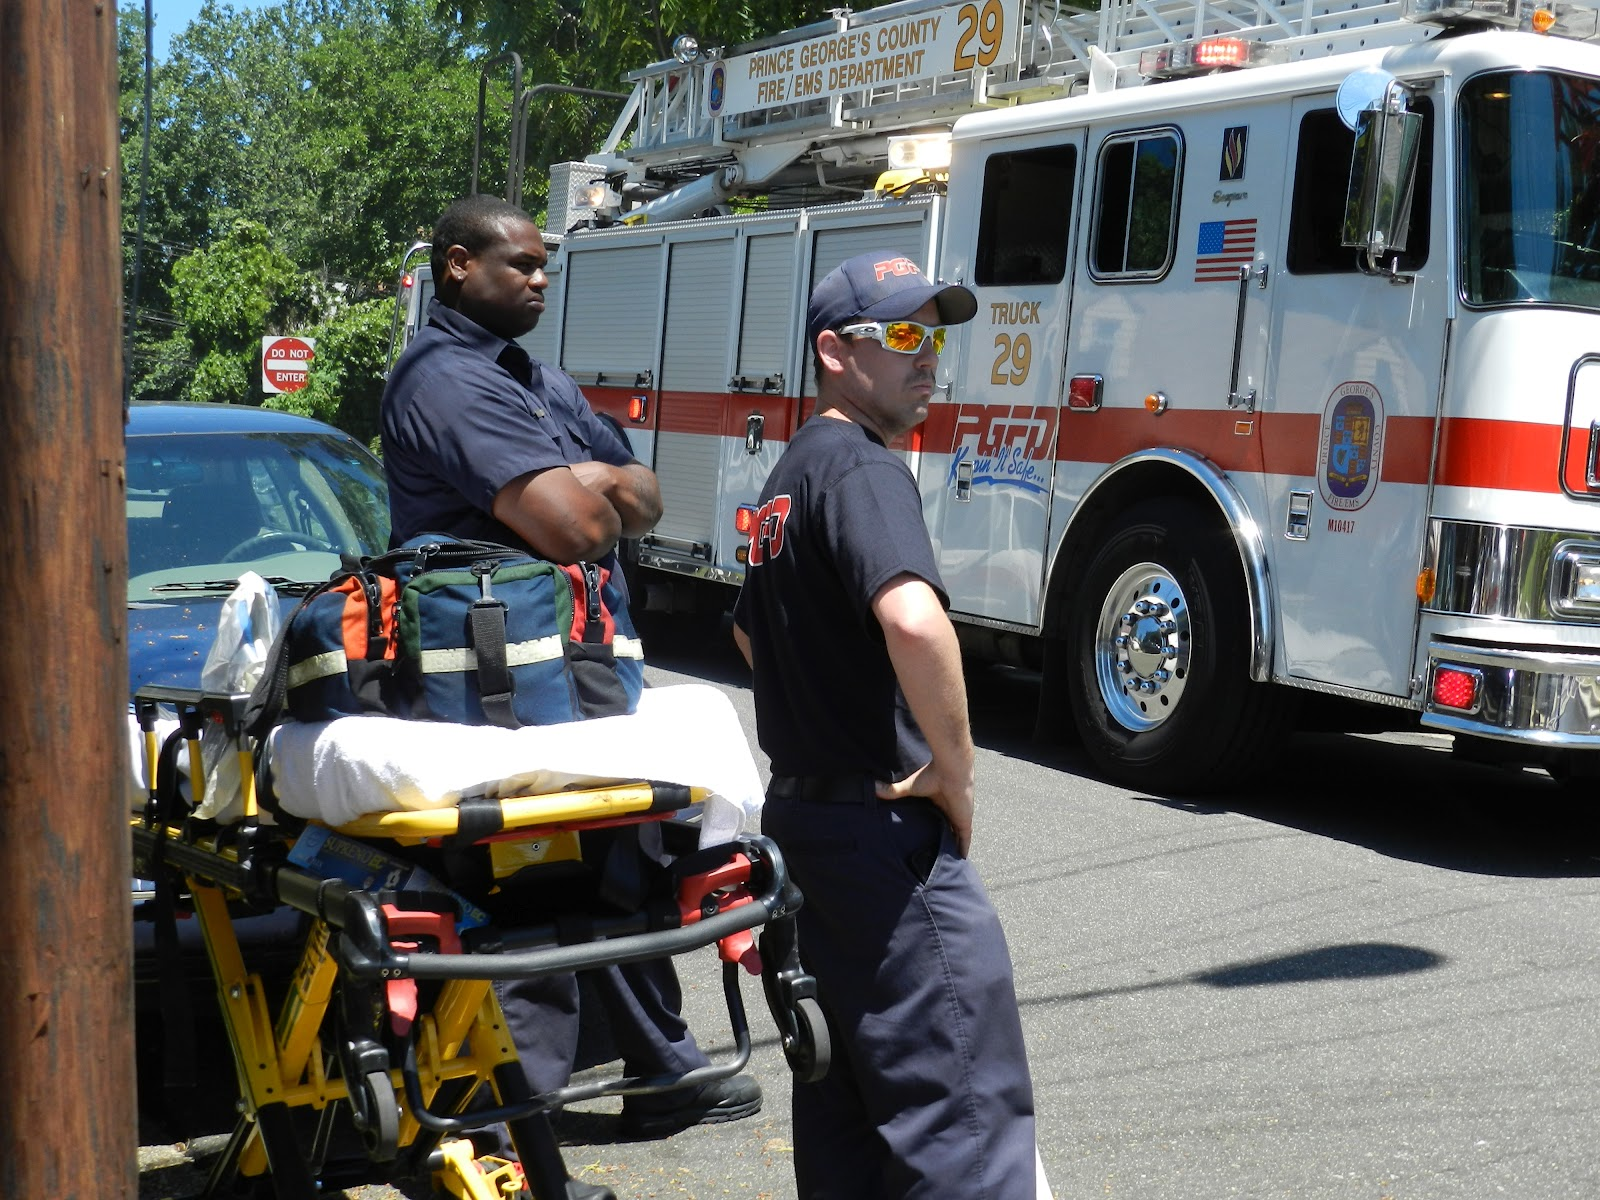 Prince George's County Fire/EMS Department: Jul 13, 2012